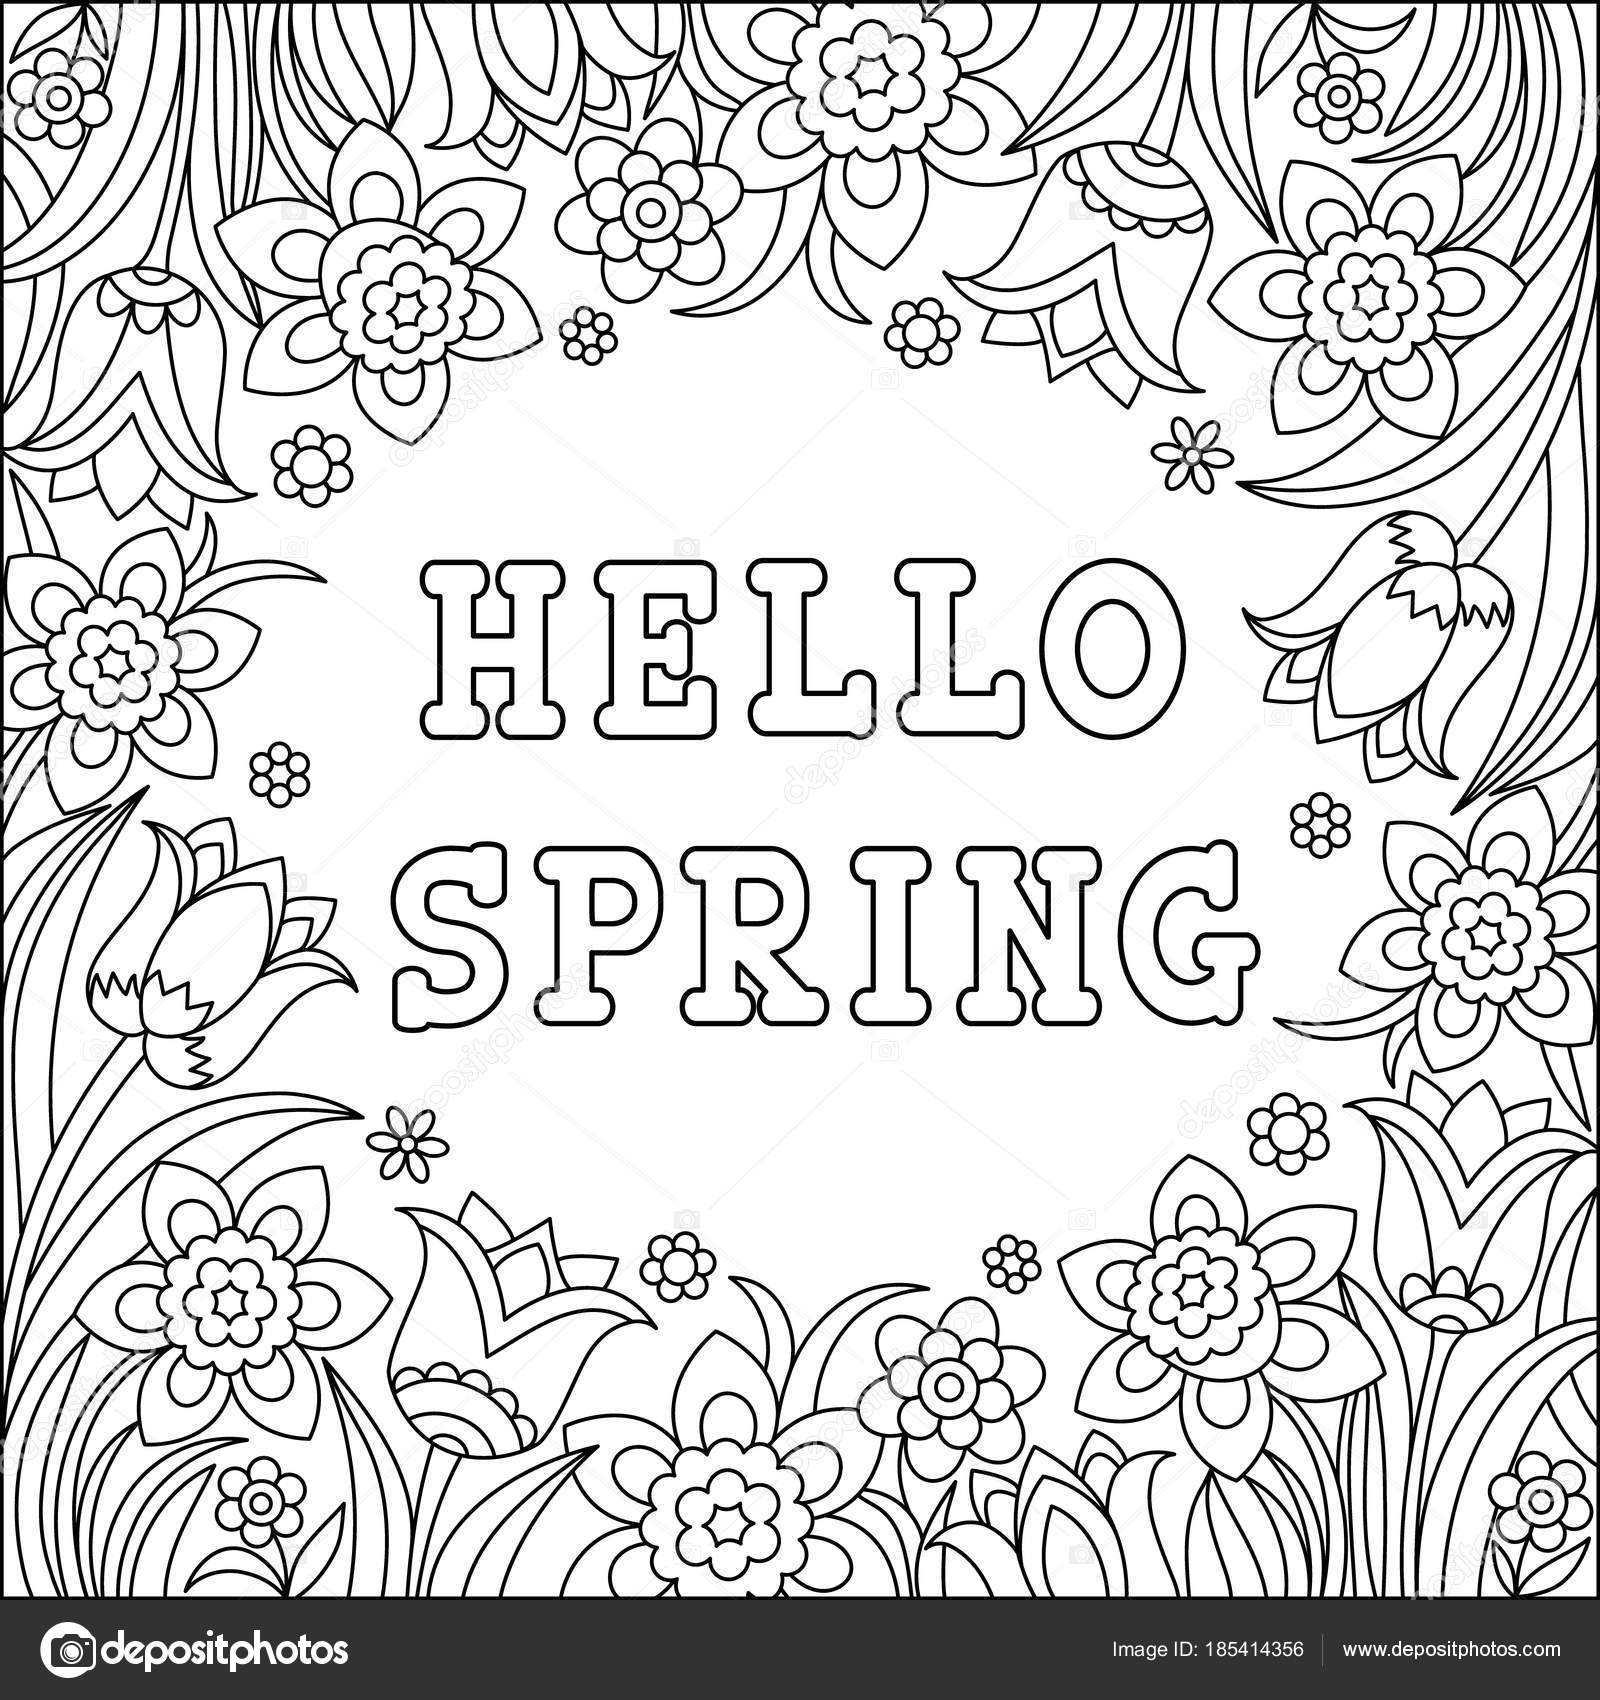 Hello spring coloring page. Greeting card with beautiful flowers. Spring  time background. Black and white vector illustration. 8